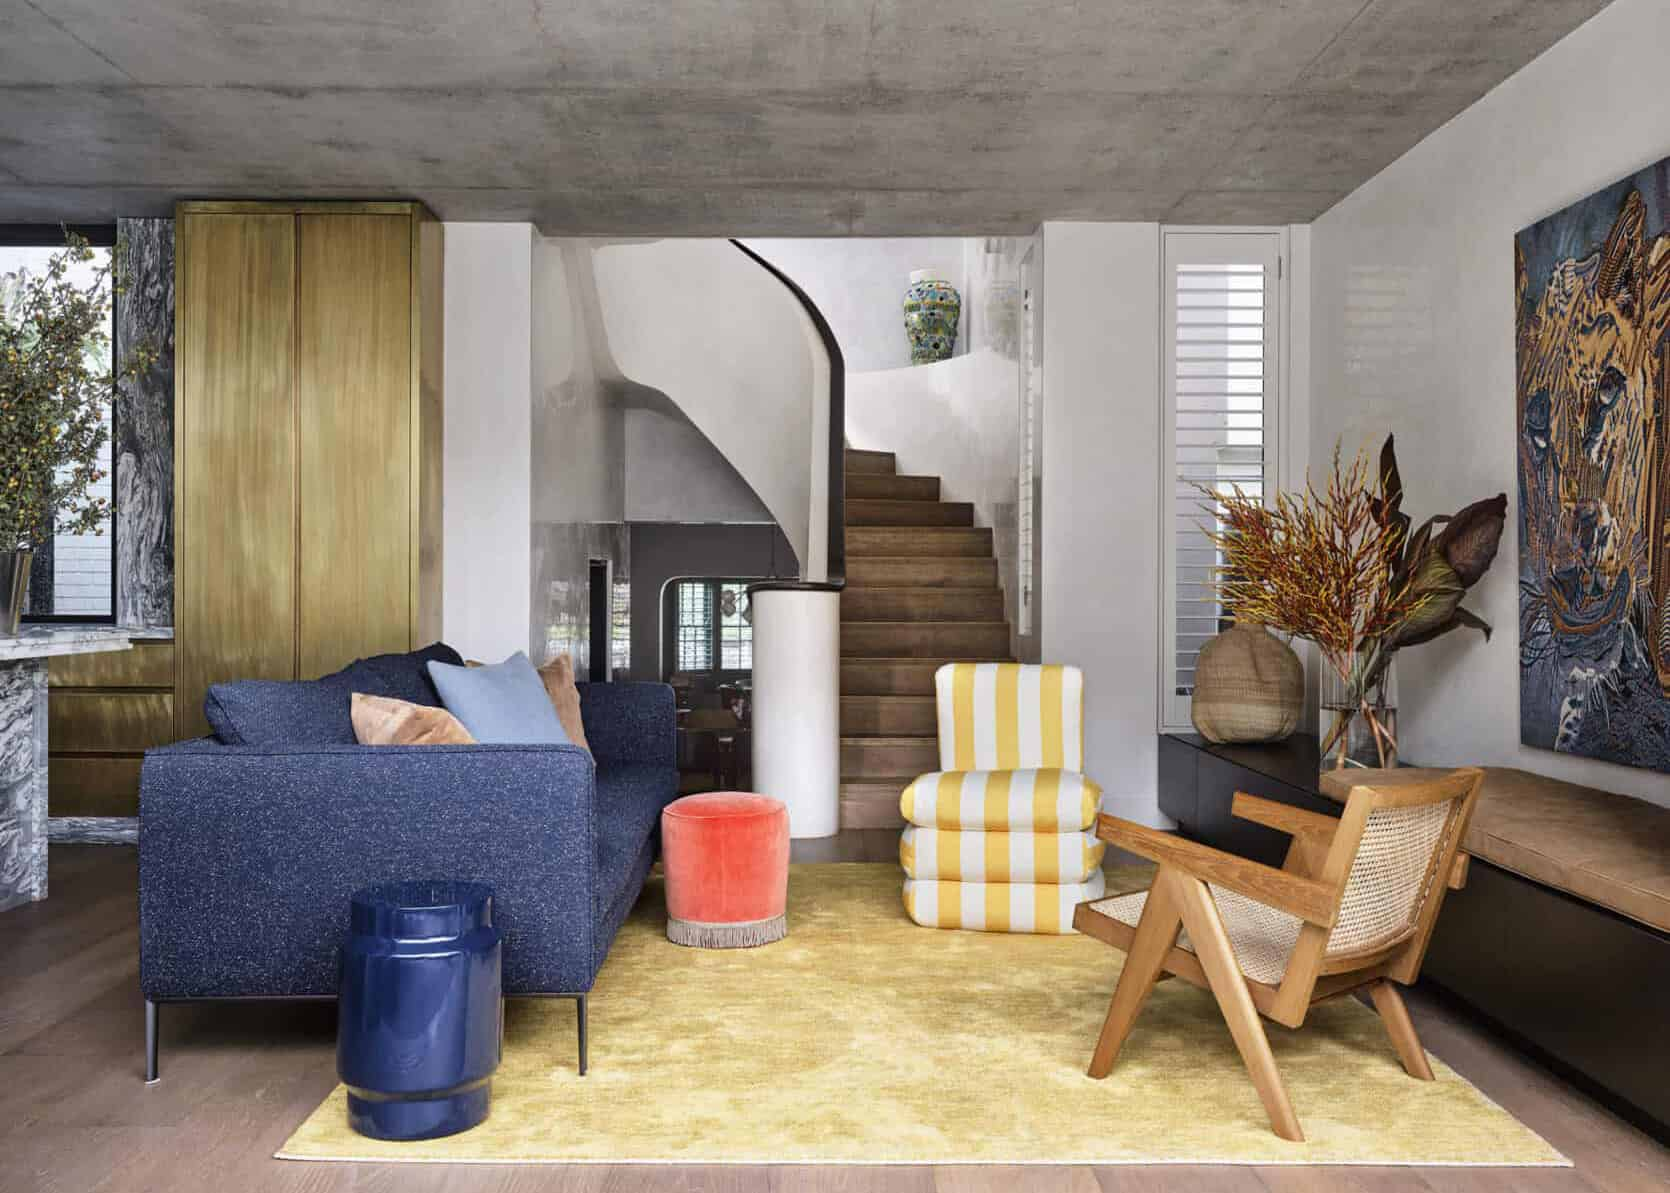 """Are Indoor Cabana Stripes Still Cool In 2021"""" 5 Ways To Incorporate Them In Your Home In A Sophisticated & Non Cheesy Way"""